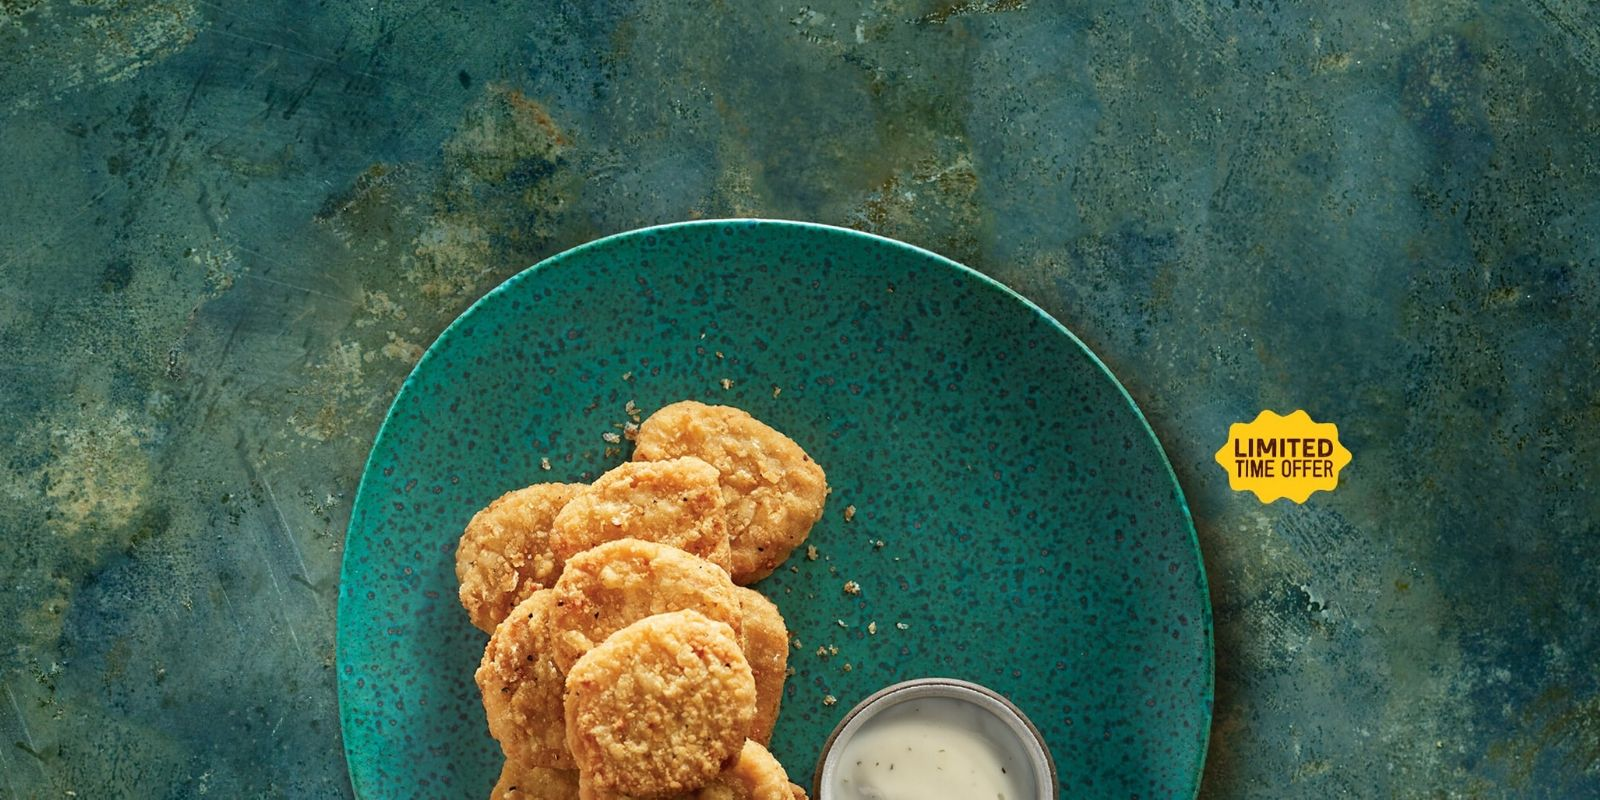 Vegan chicken nuggets now available at A&W Canada